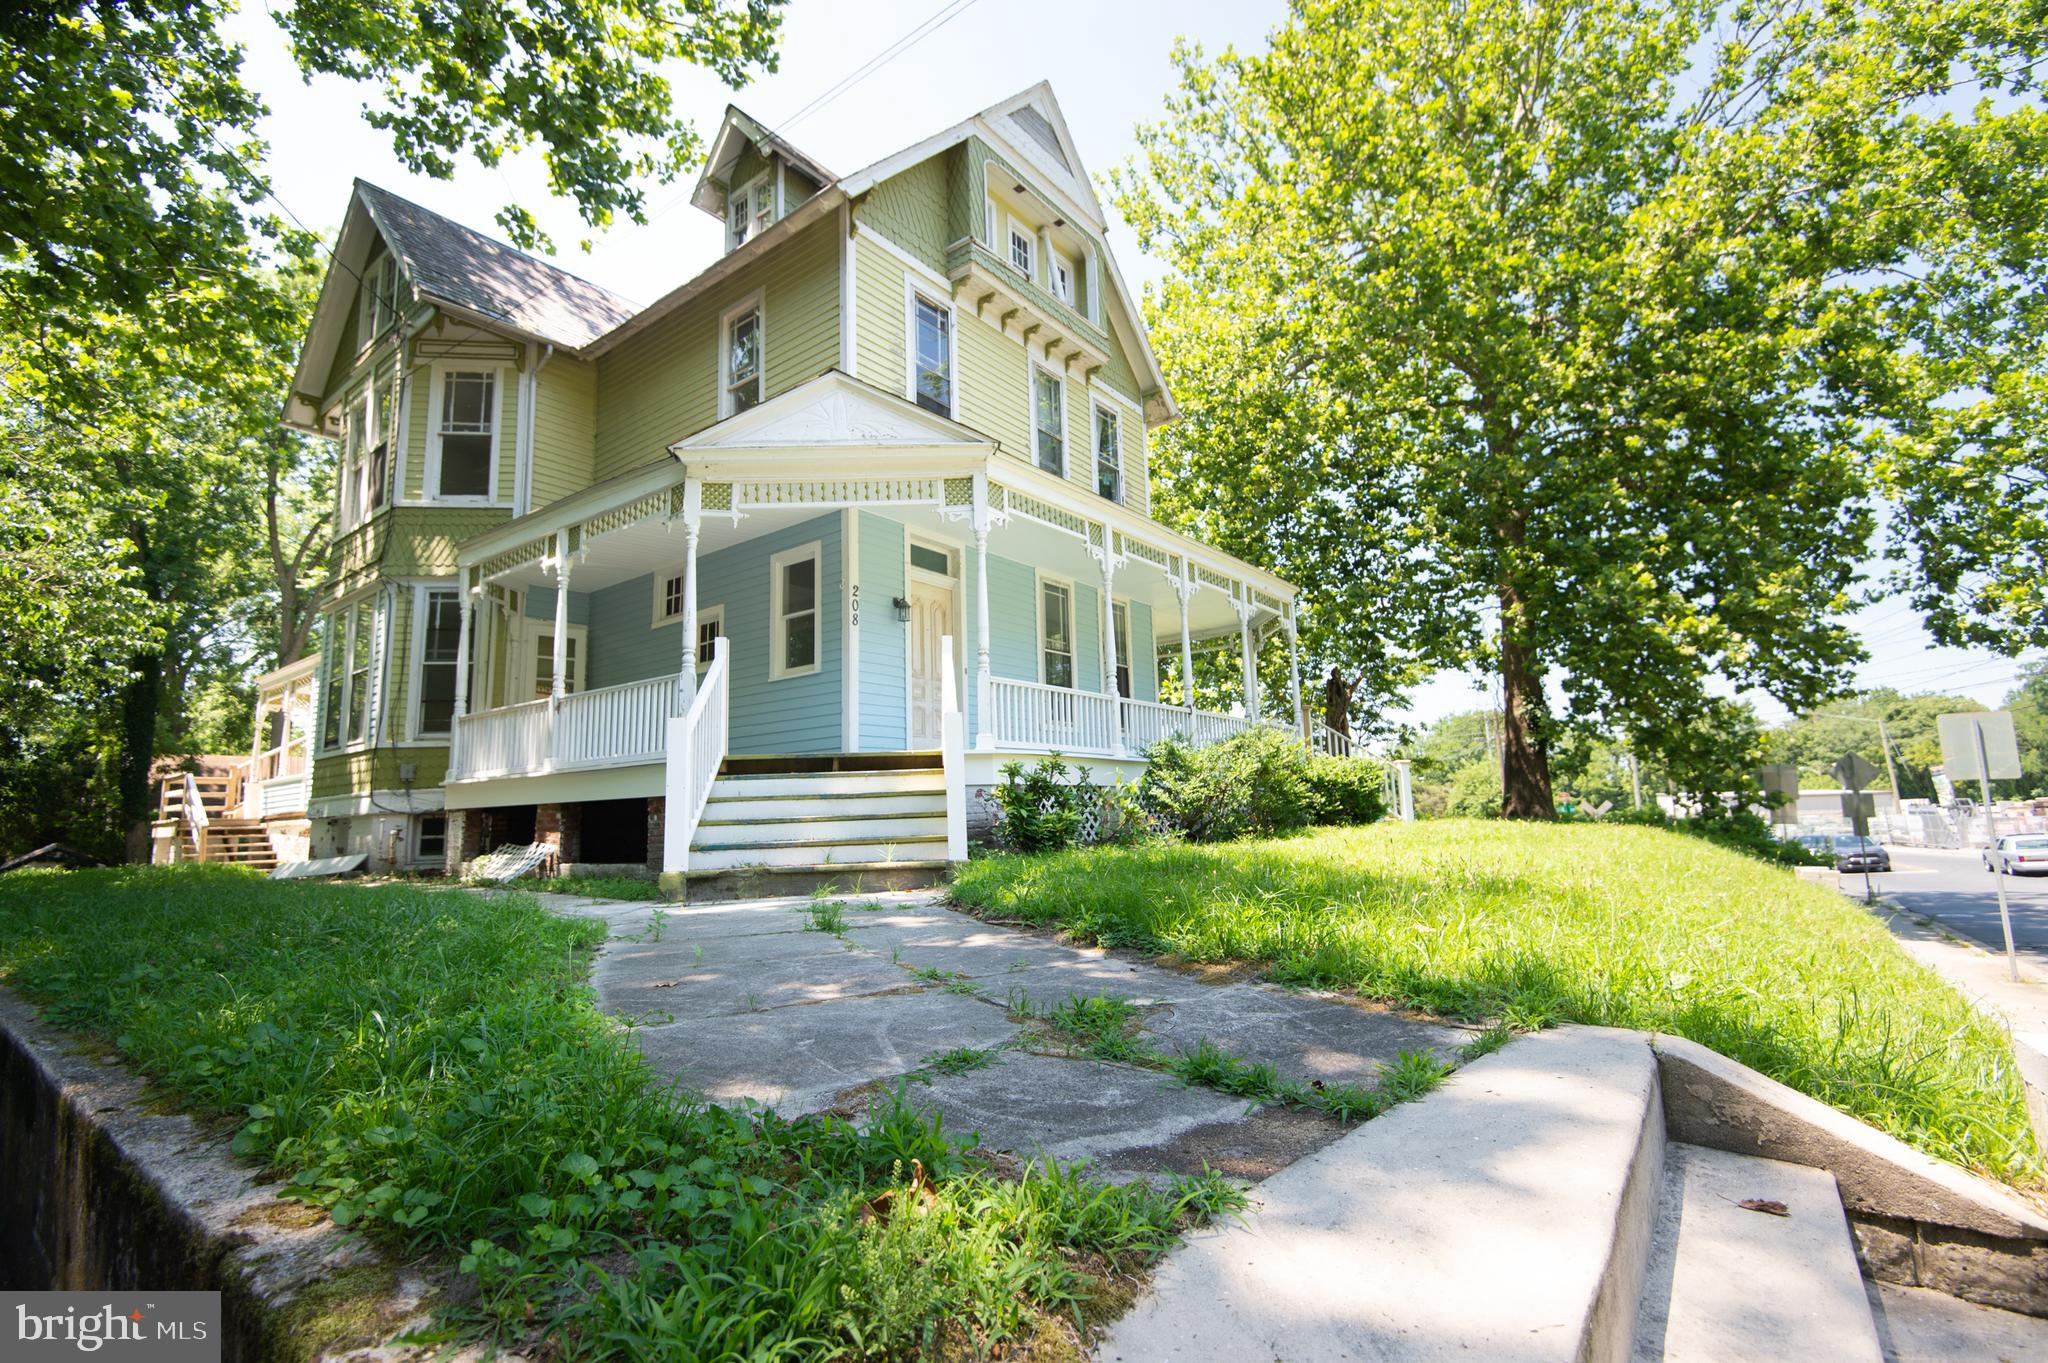 This Victorian could be a showplace with the right attention!  It is sited on large lot with ample parking.  Features include a wrap porch, original wood work, 3 sets of pocket doors.  She is waiting for the right person to bring her back to her original beauty!